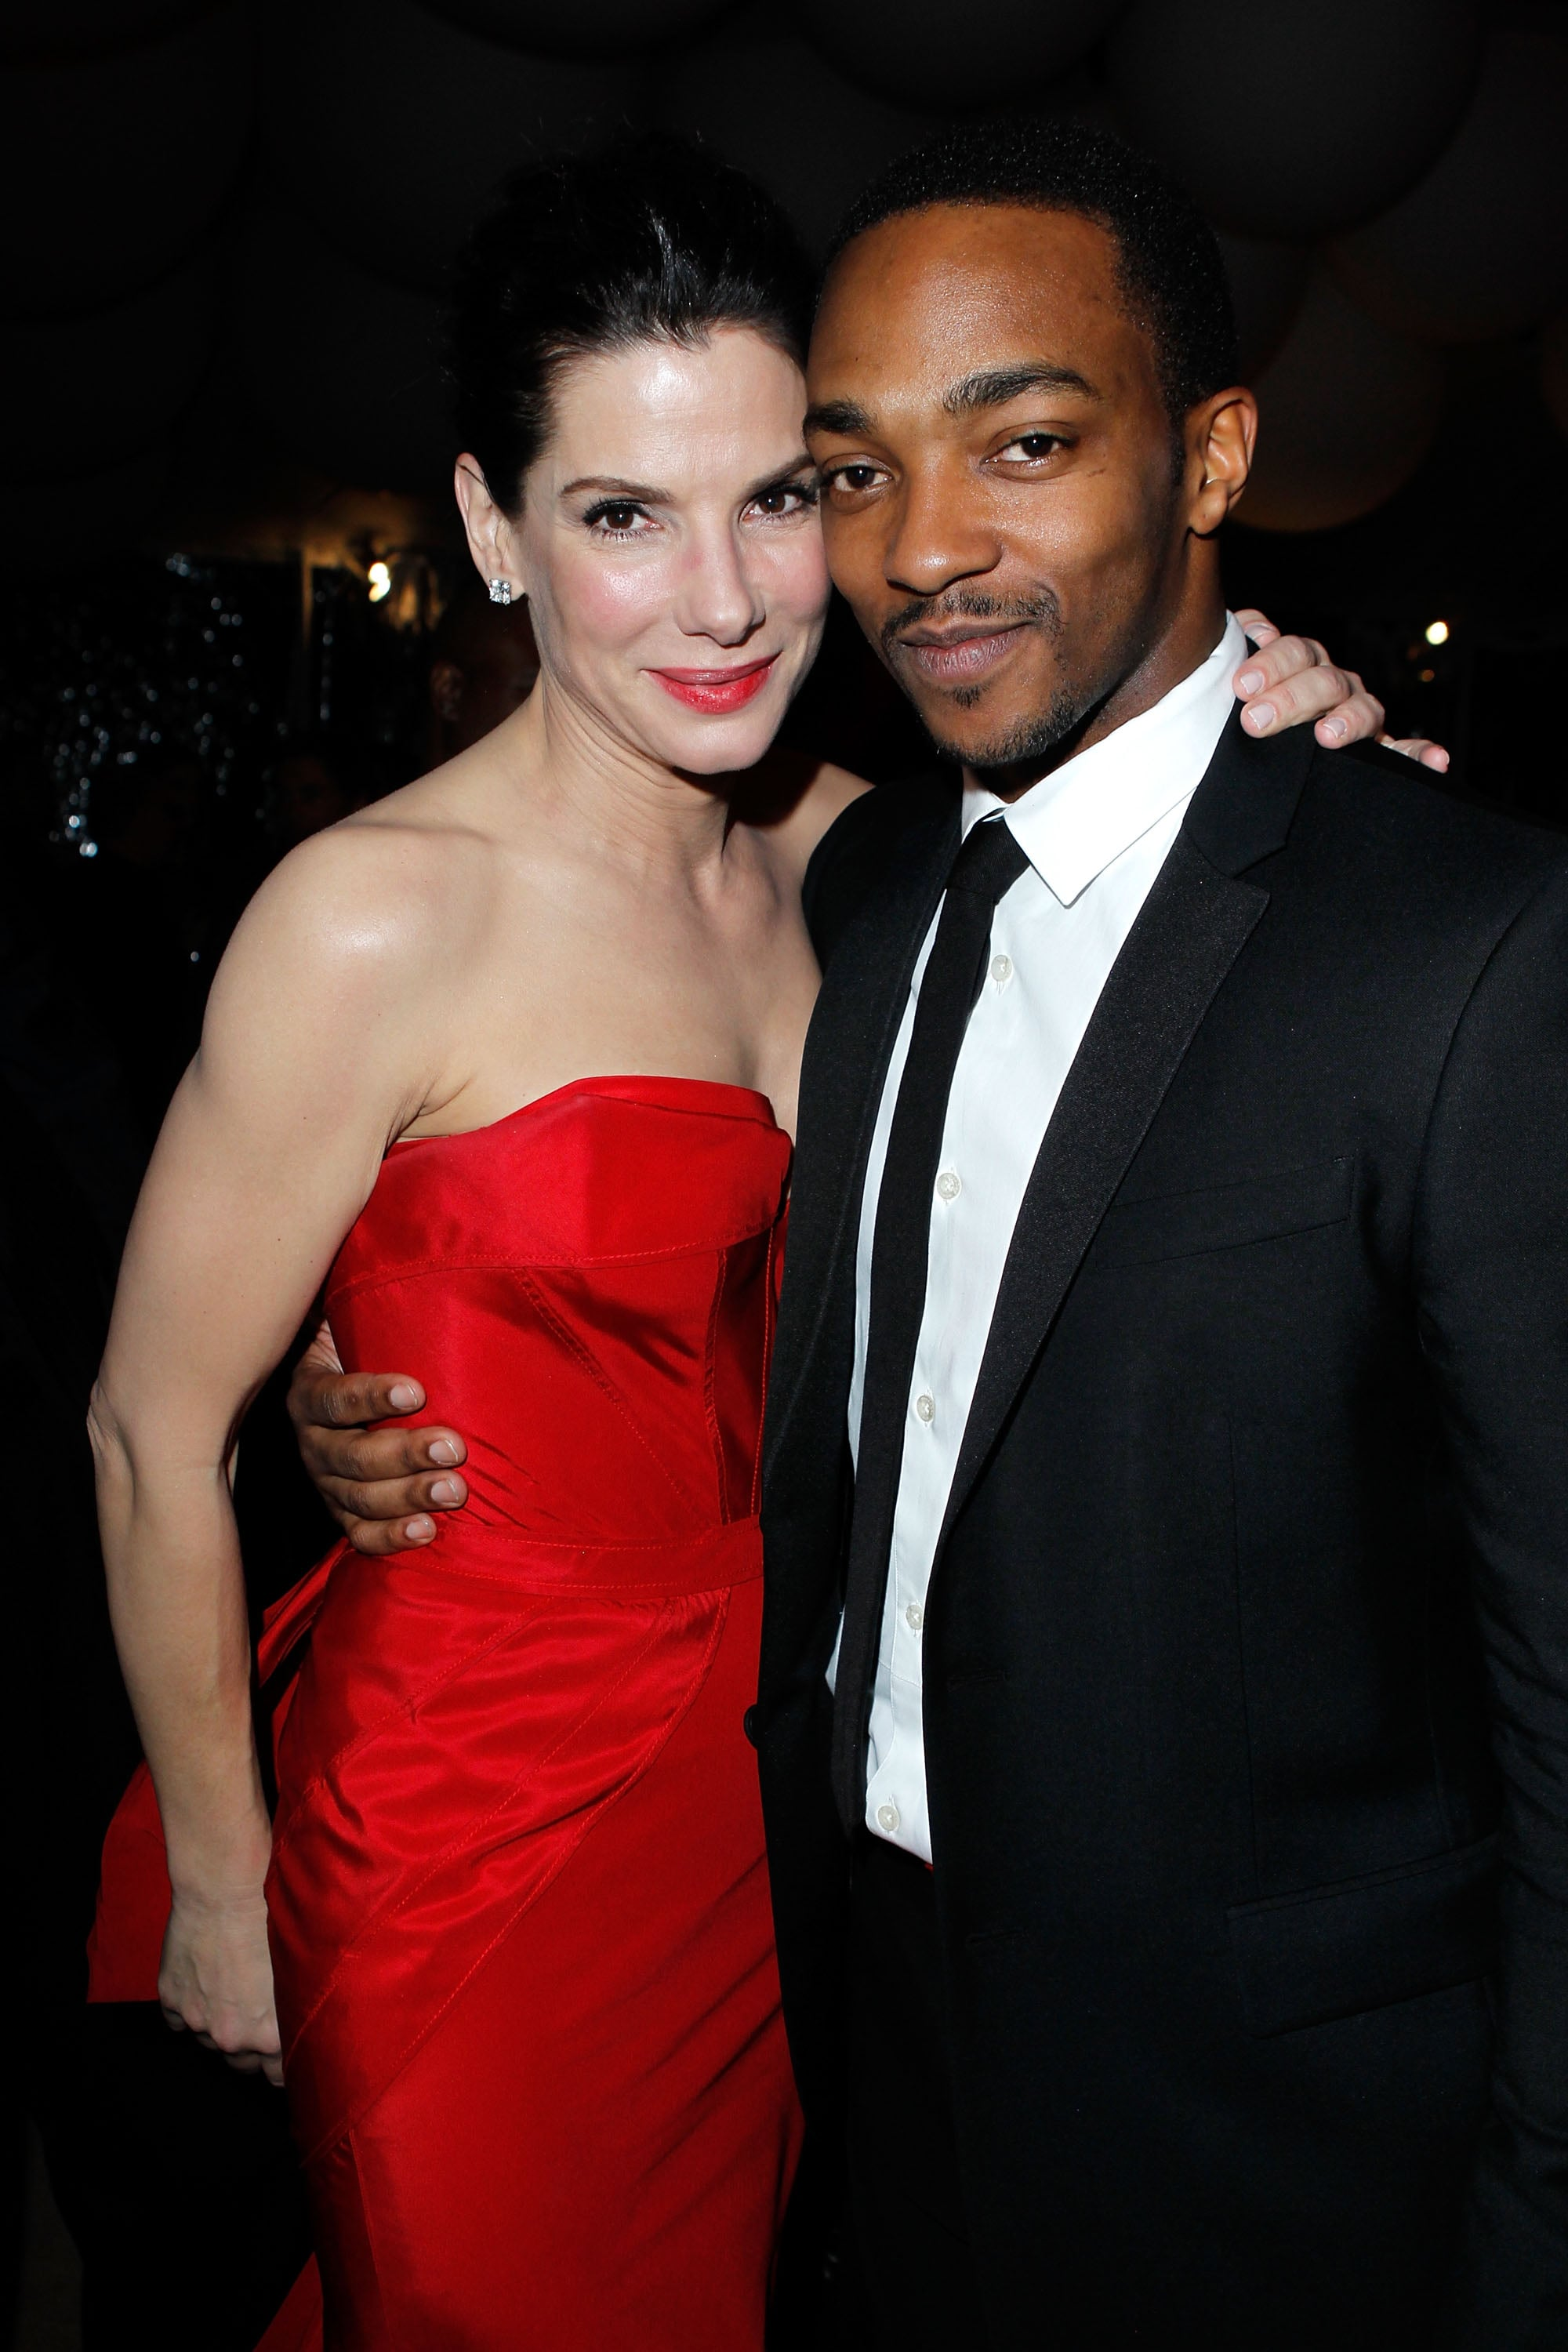 Sandra shared a hug with Anthony Mackie at a February 2011 post-Oscar bash in LA.